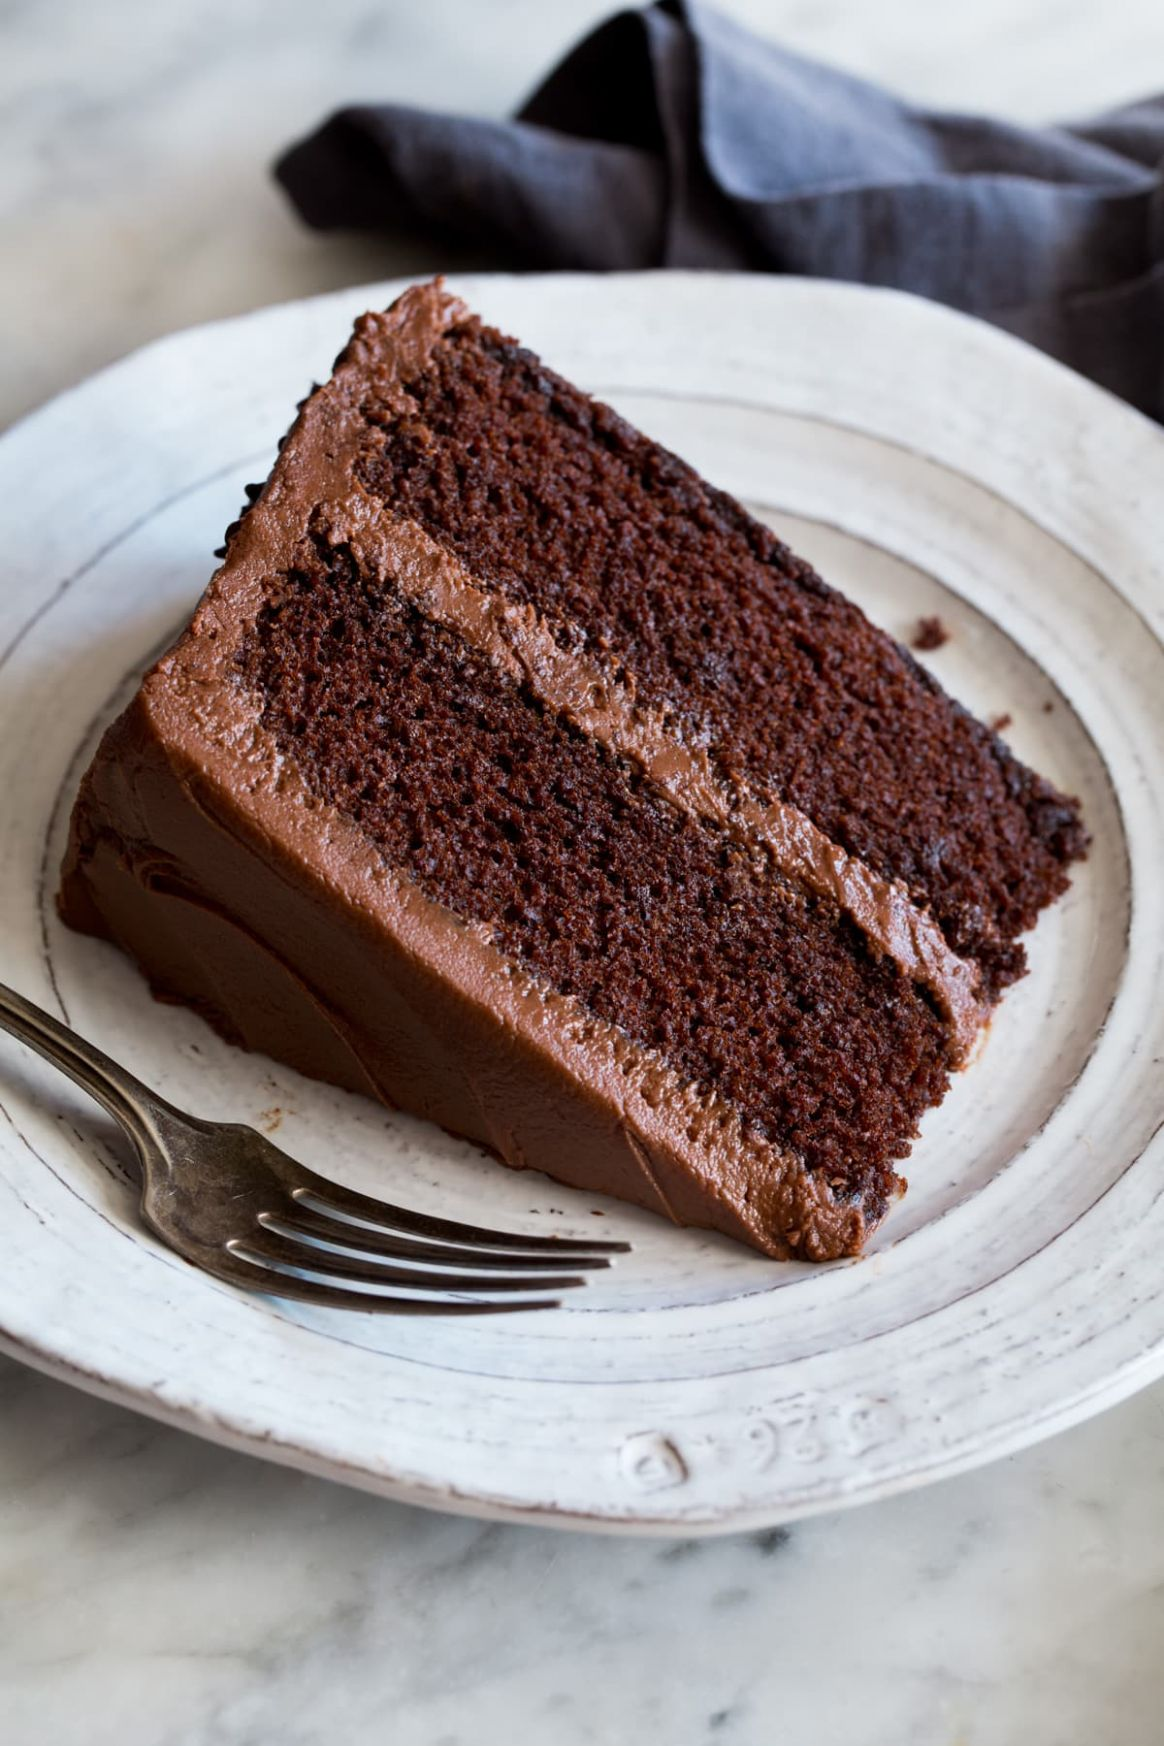 Chocolate Cake with Chocolate Buttercream Frosting - Recipes Cooking Chocolate